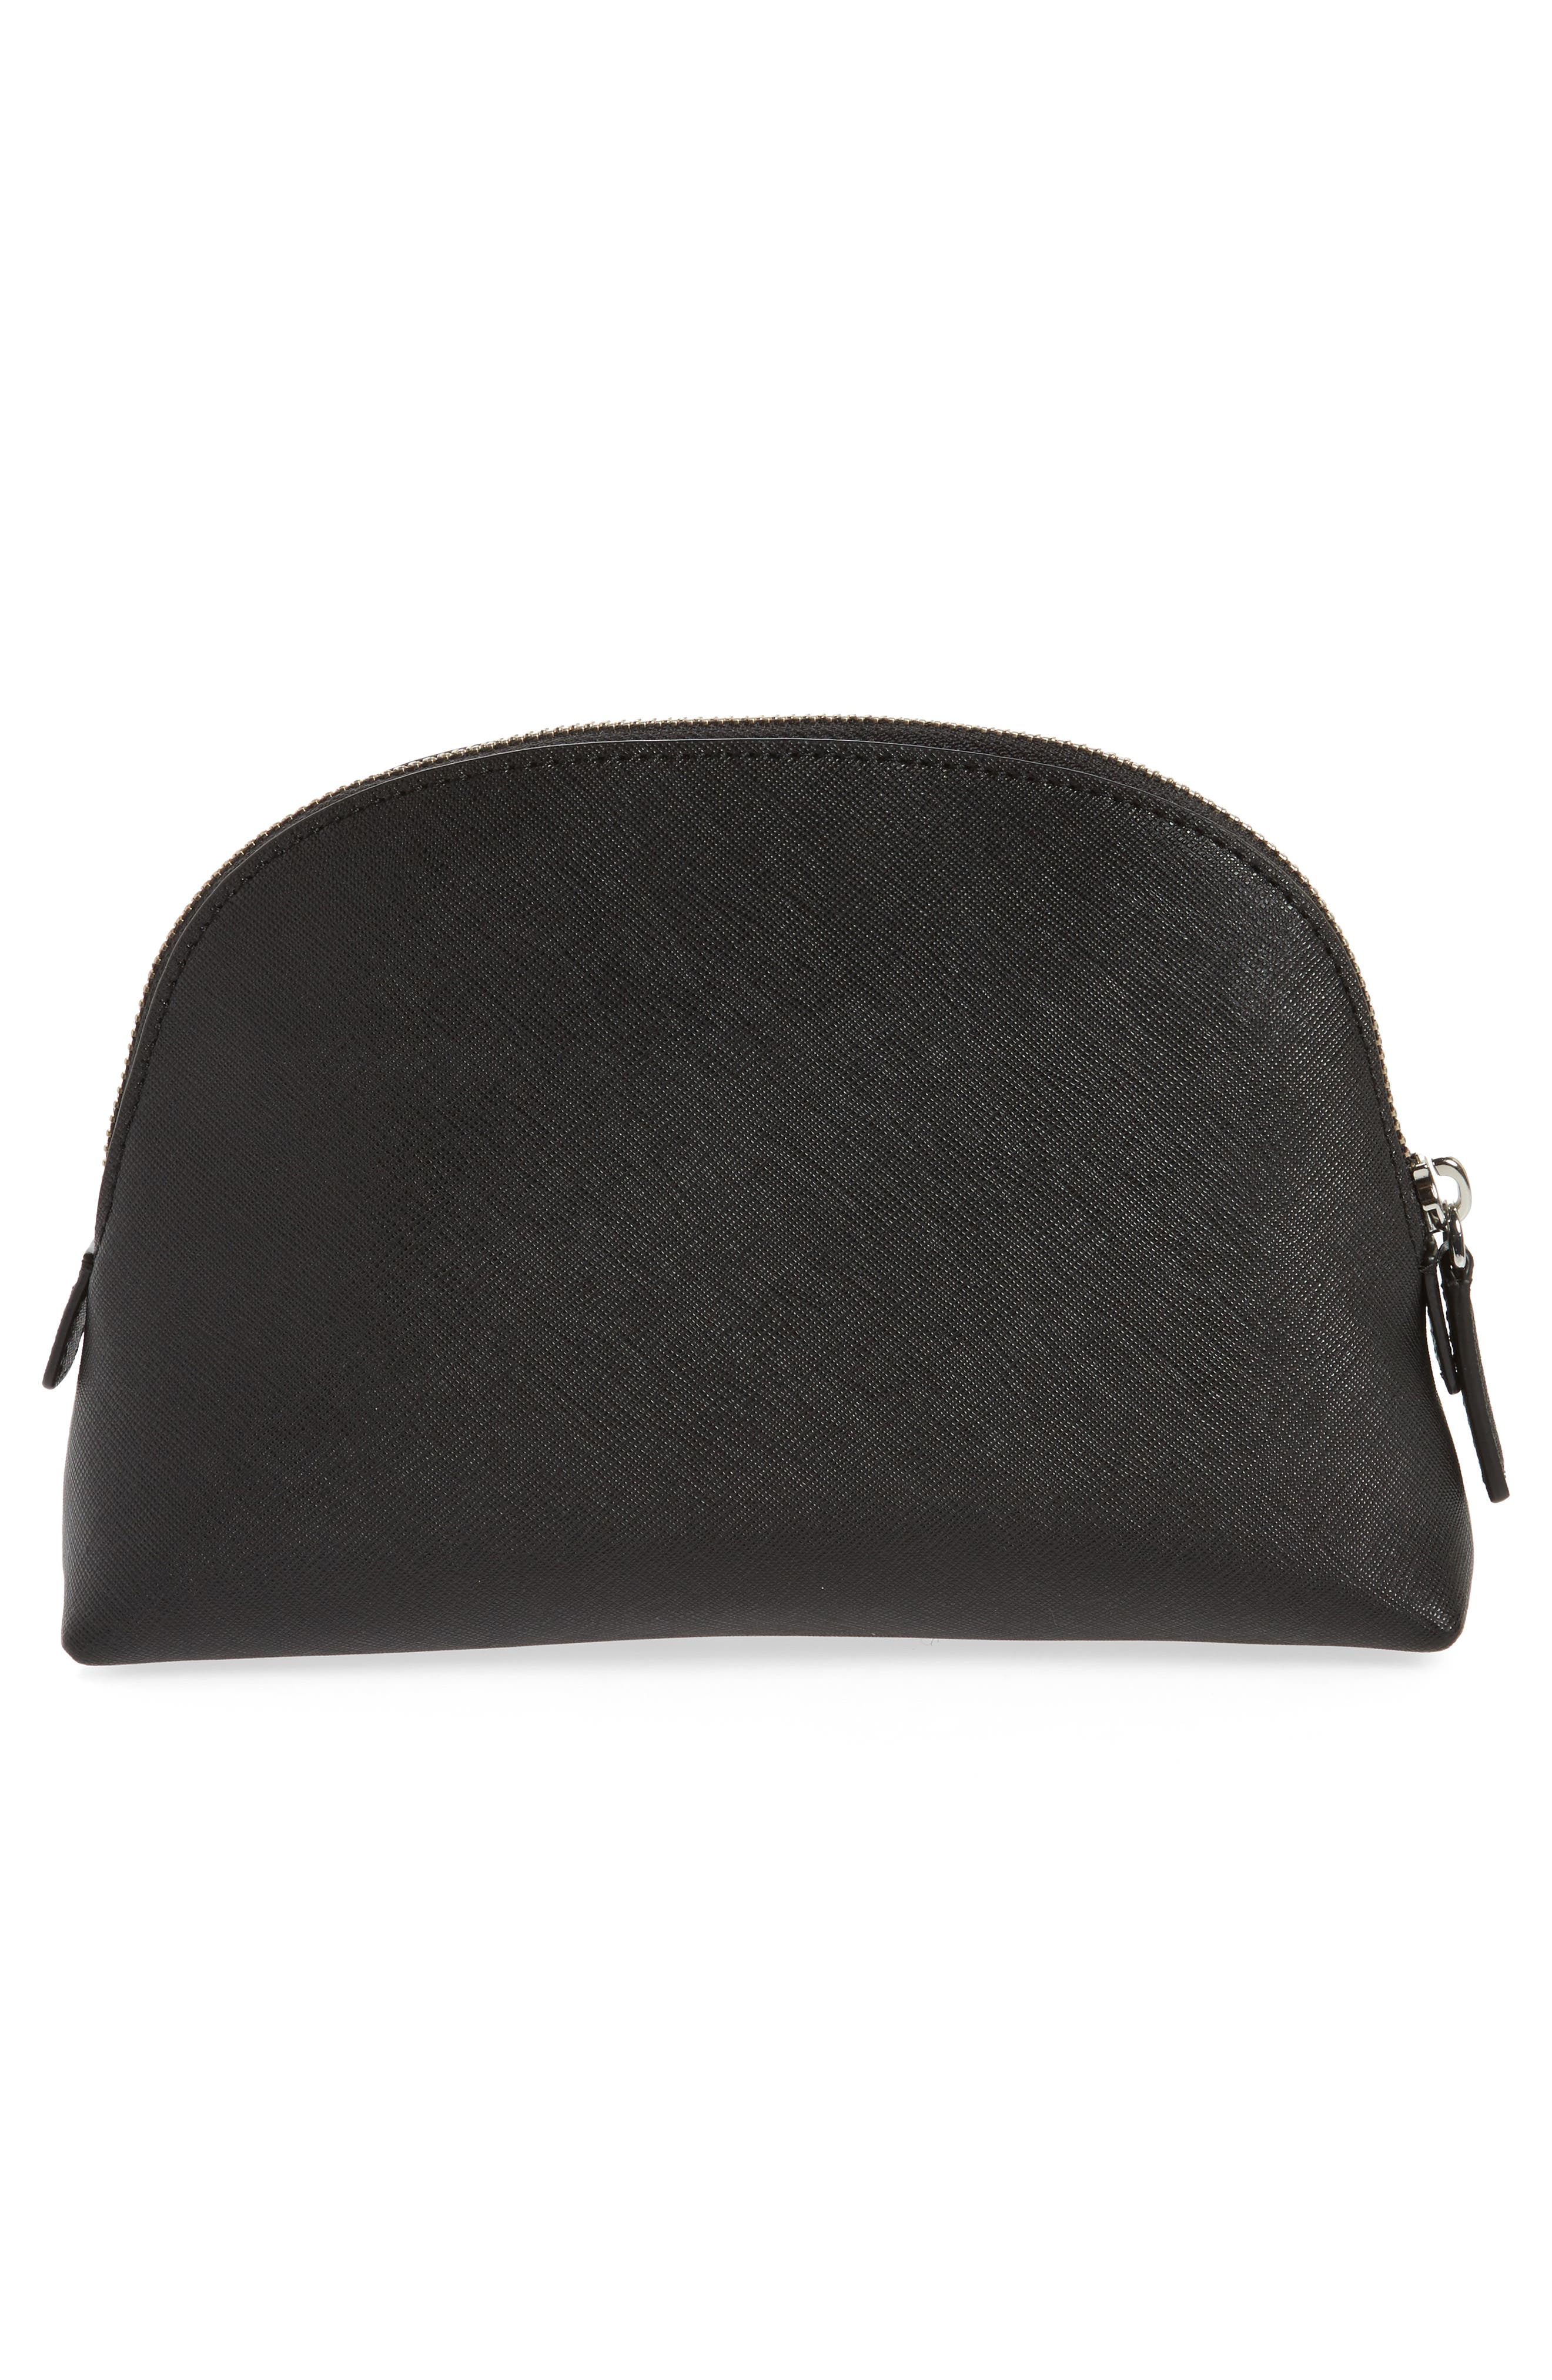 Logo Embossed Leather Cosmetics Bag,                             Alternate thumbnail 2, color,                             BLACK